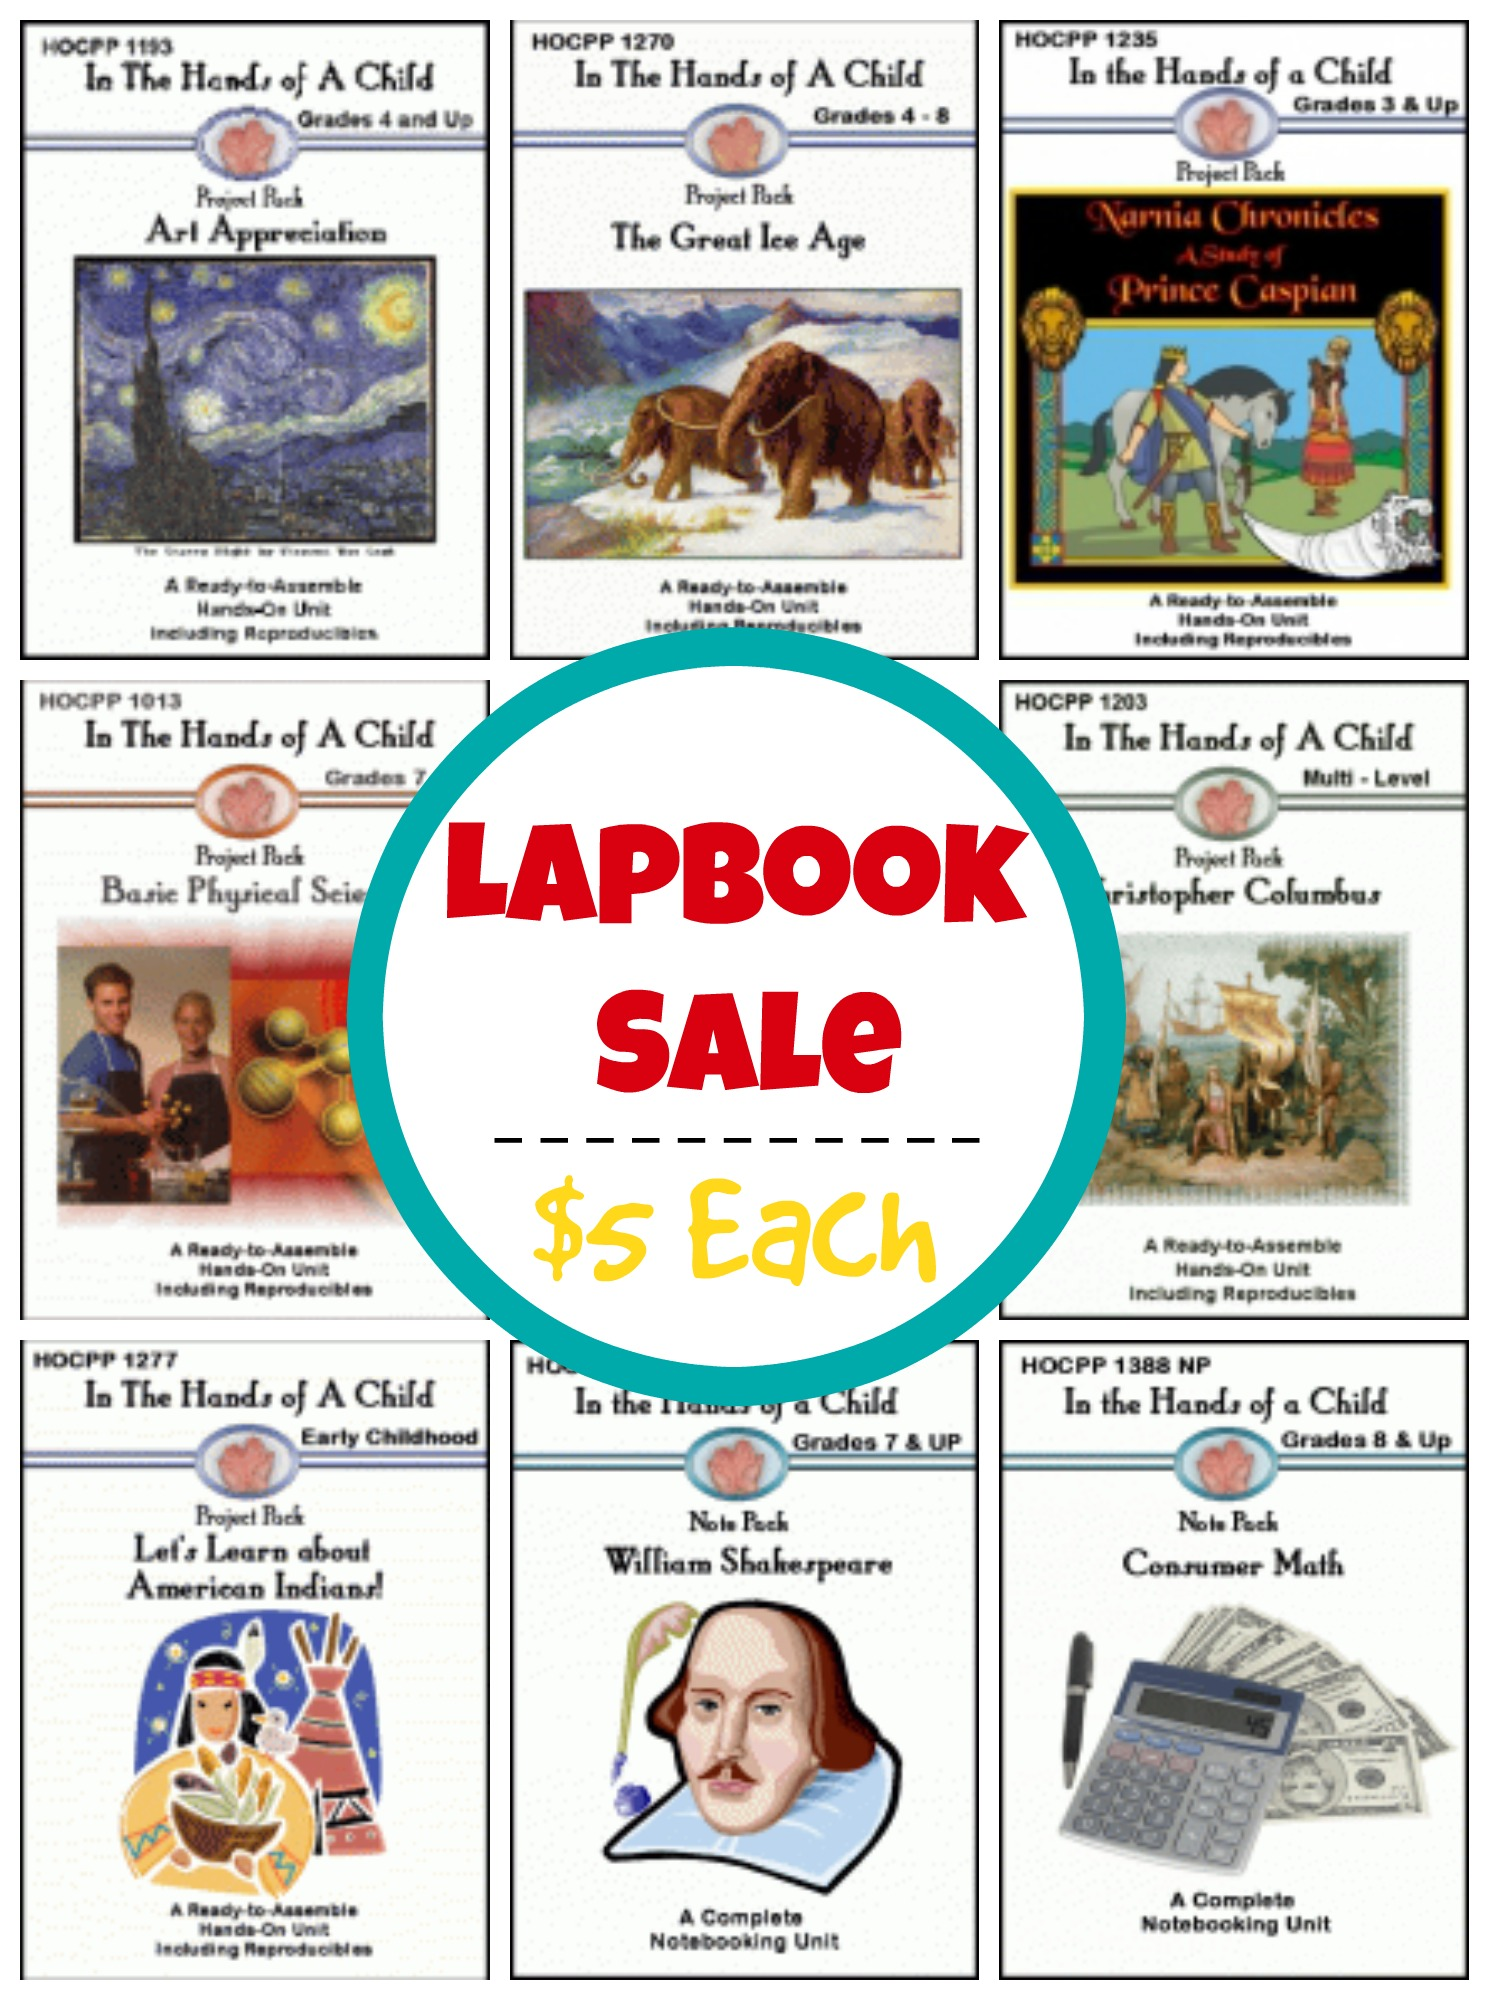 In the Hands of a Child Lapbook Sale - $5 Each!